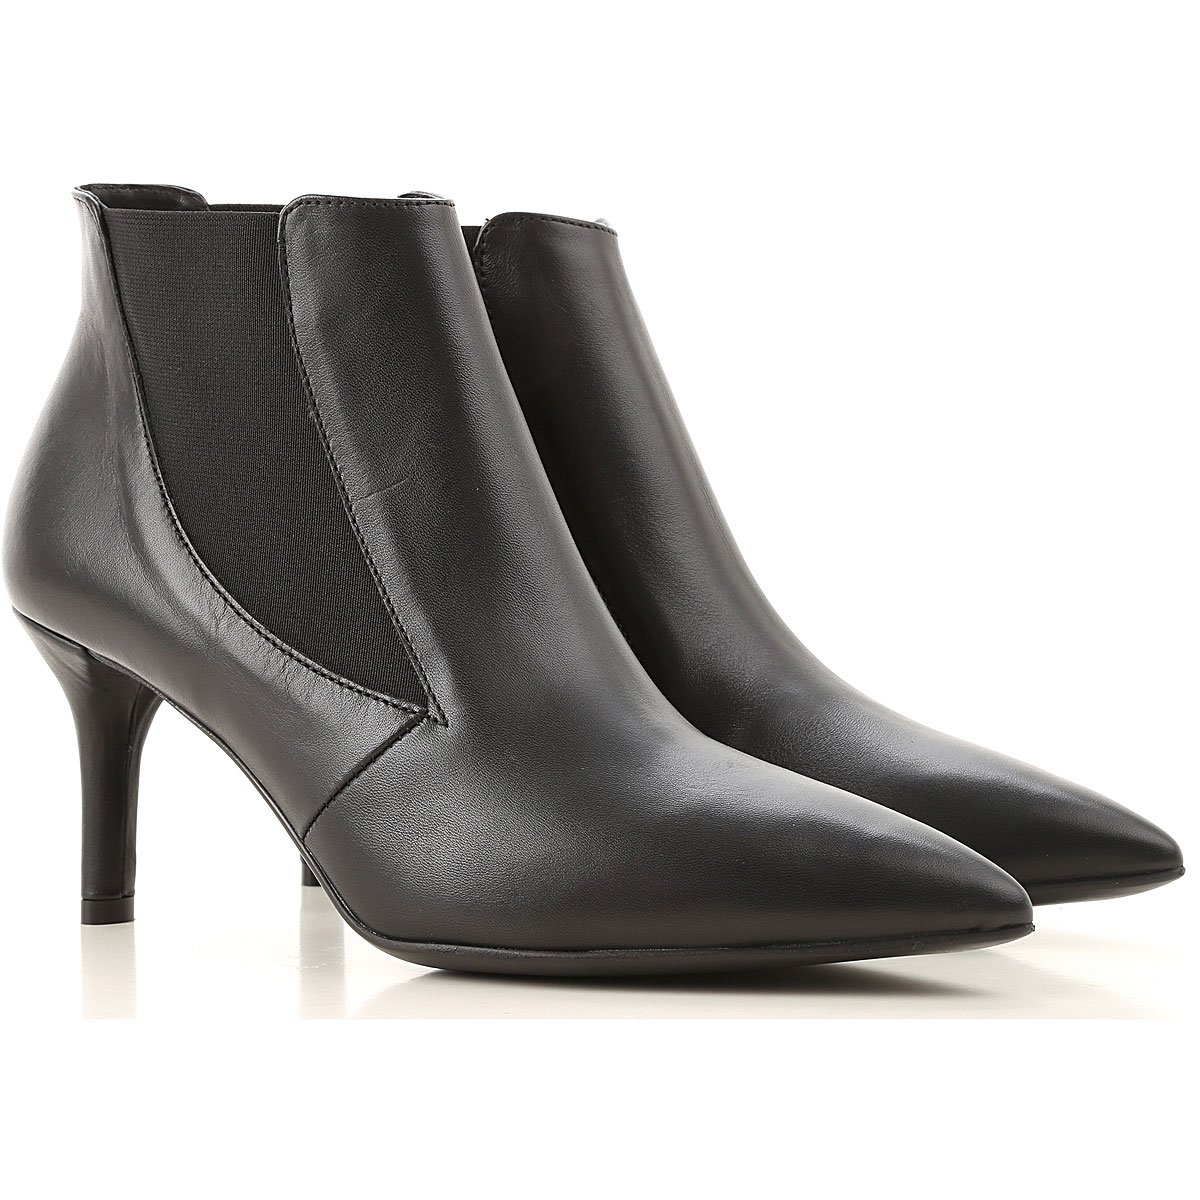 Janet & Janet Pumps & High Heels for Women On Sale, Black, Leather, 2019, 10 7 8 9